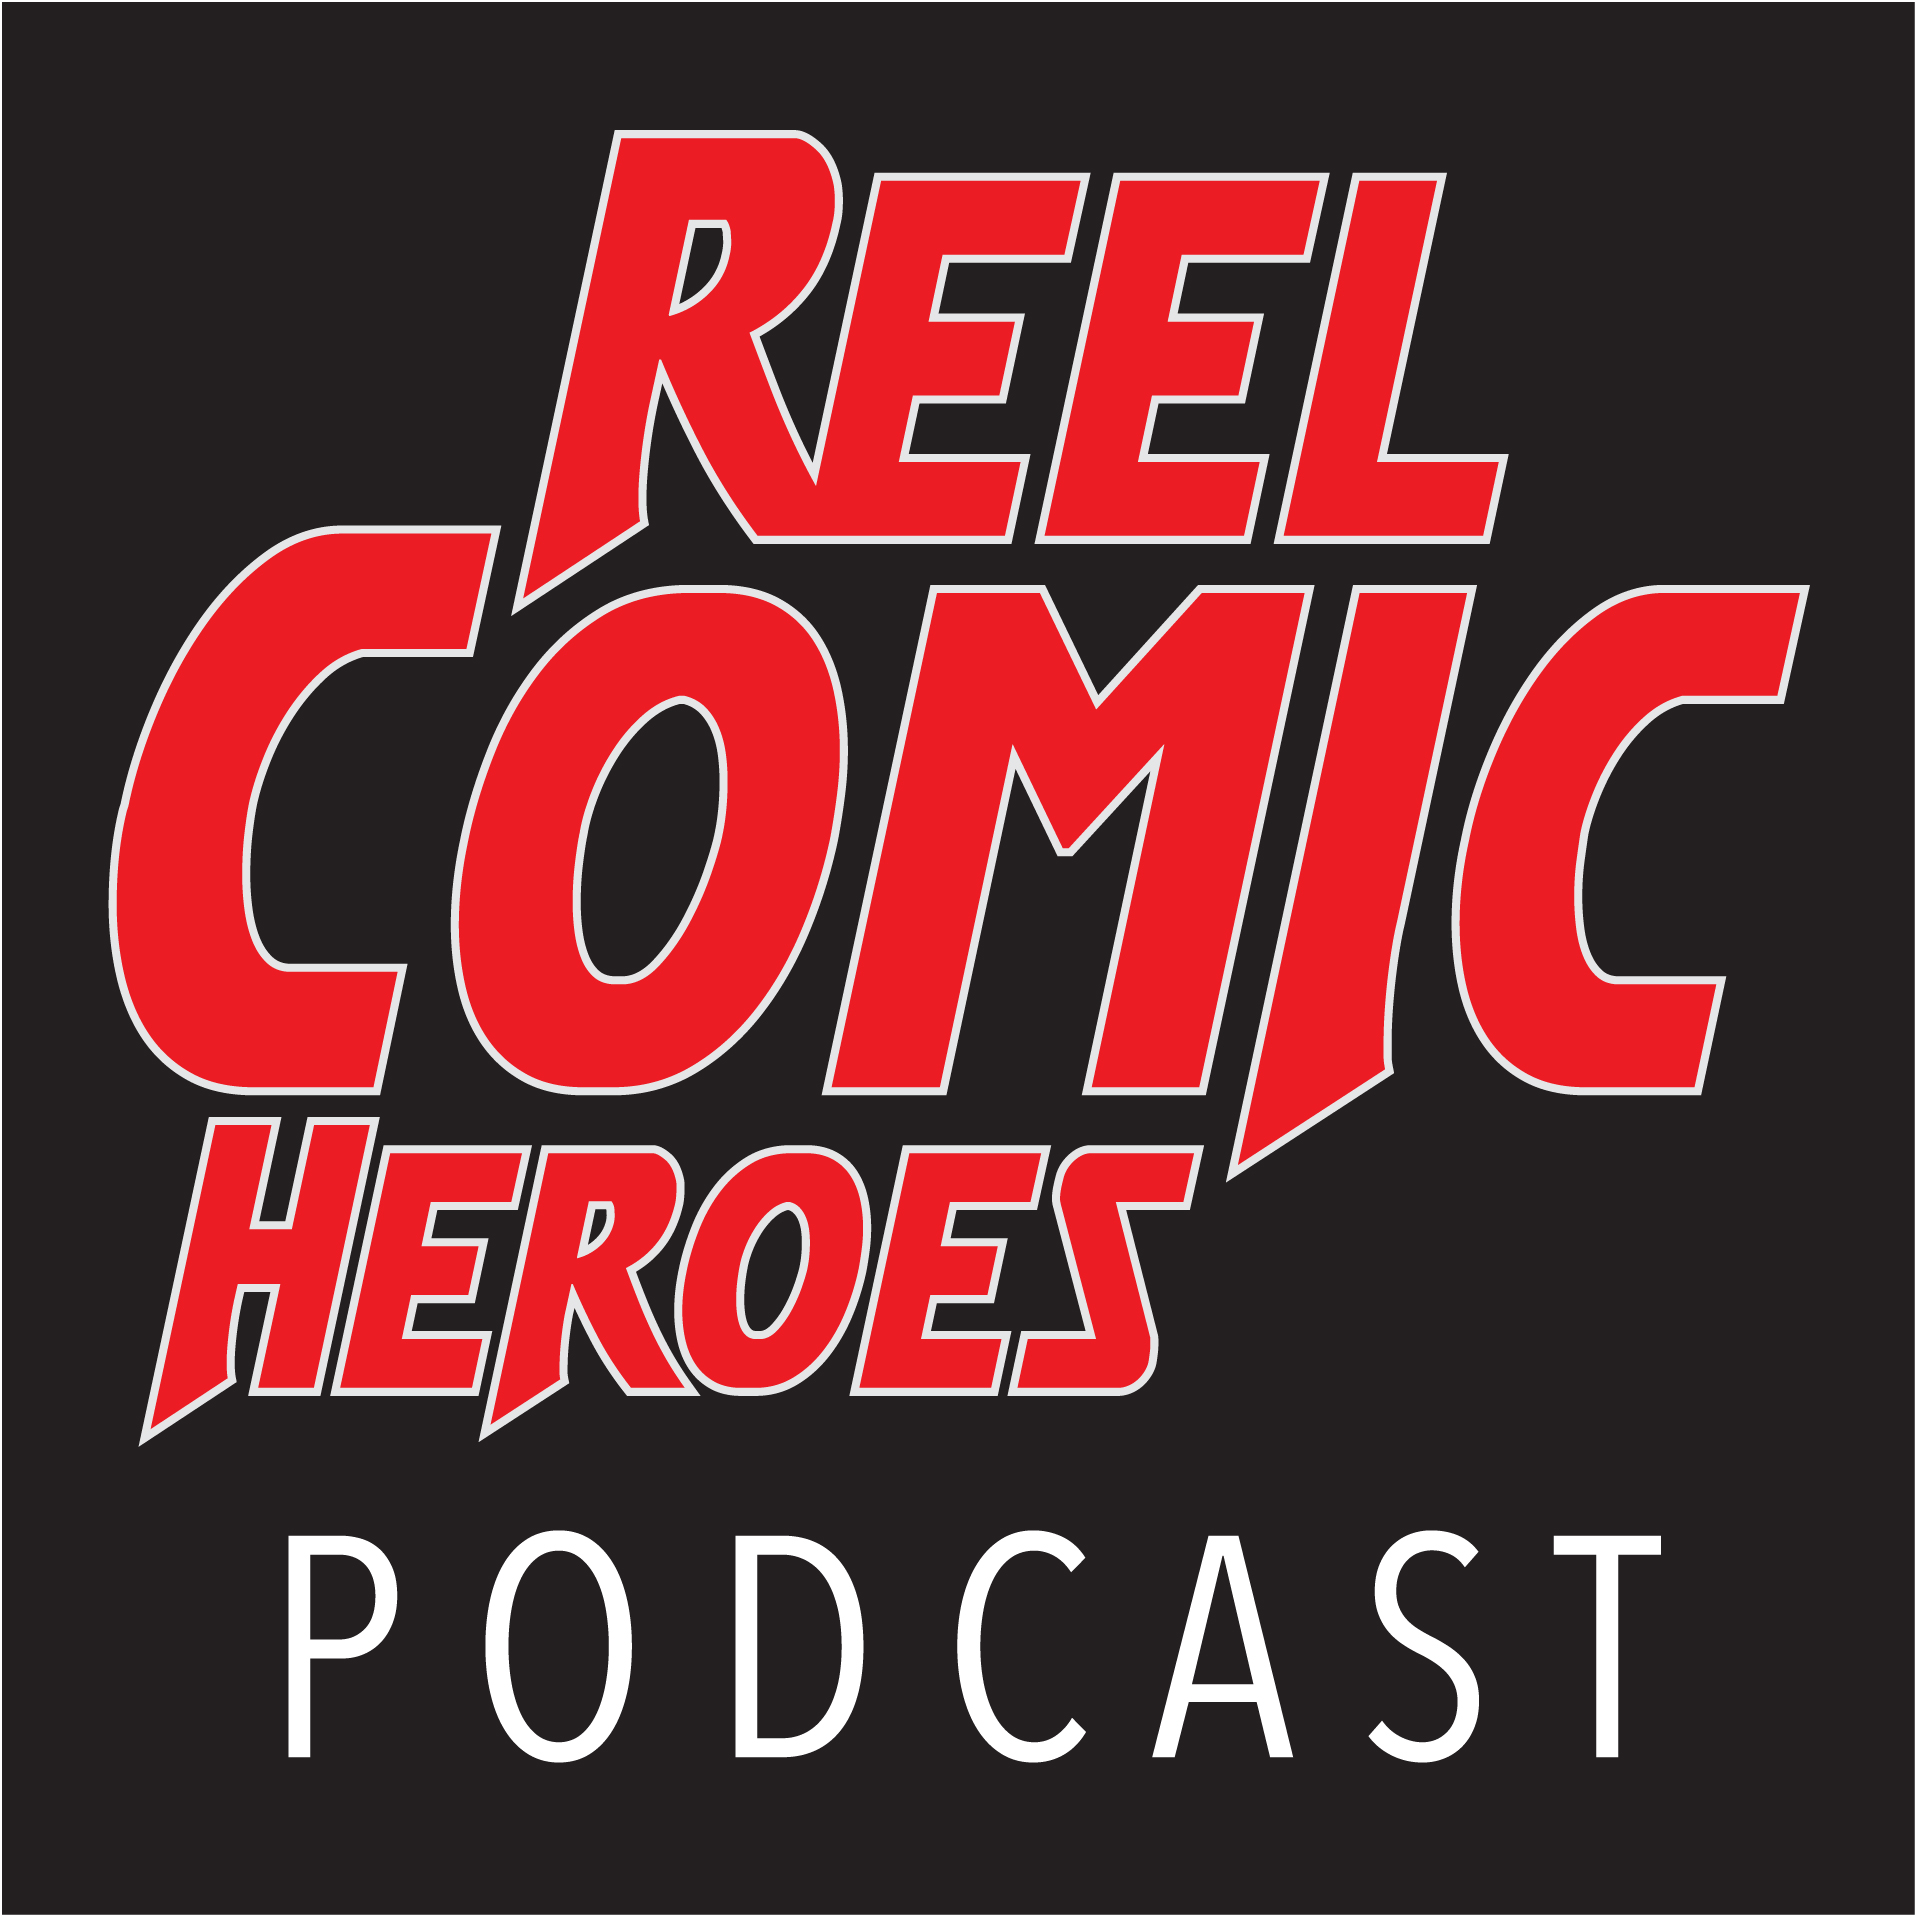 Artwork for Reel Comic Heroes 019 - A Conversation with Rory from @HangoverReviews